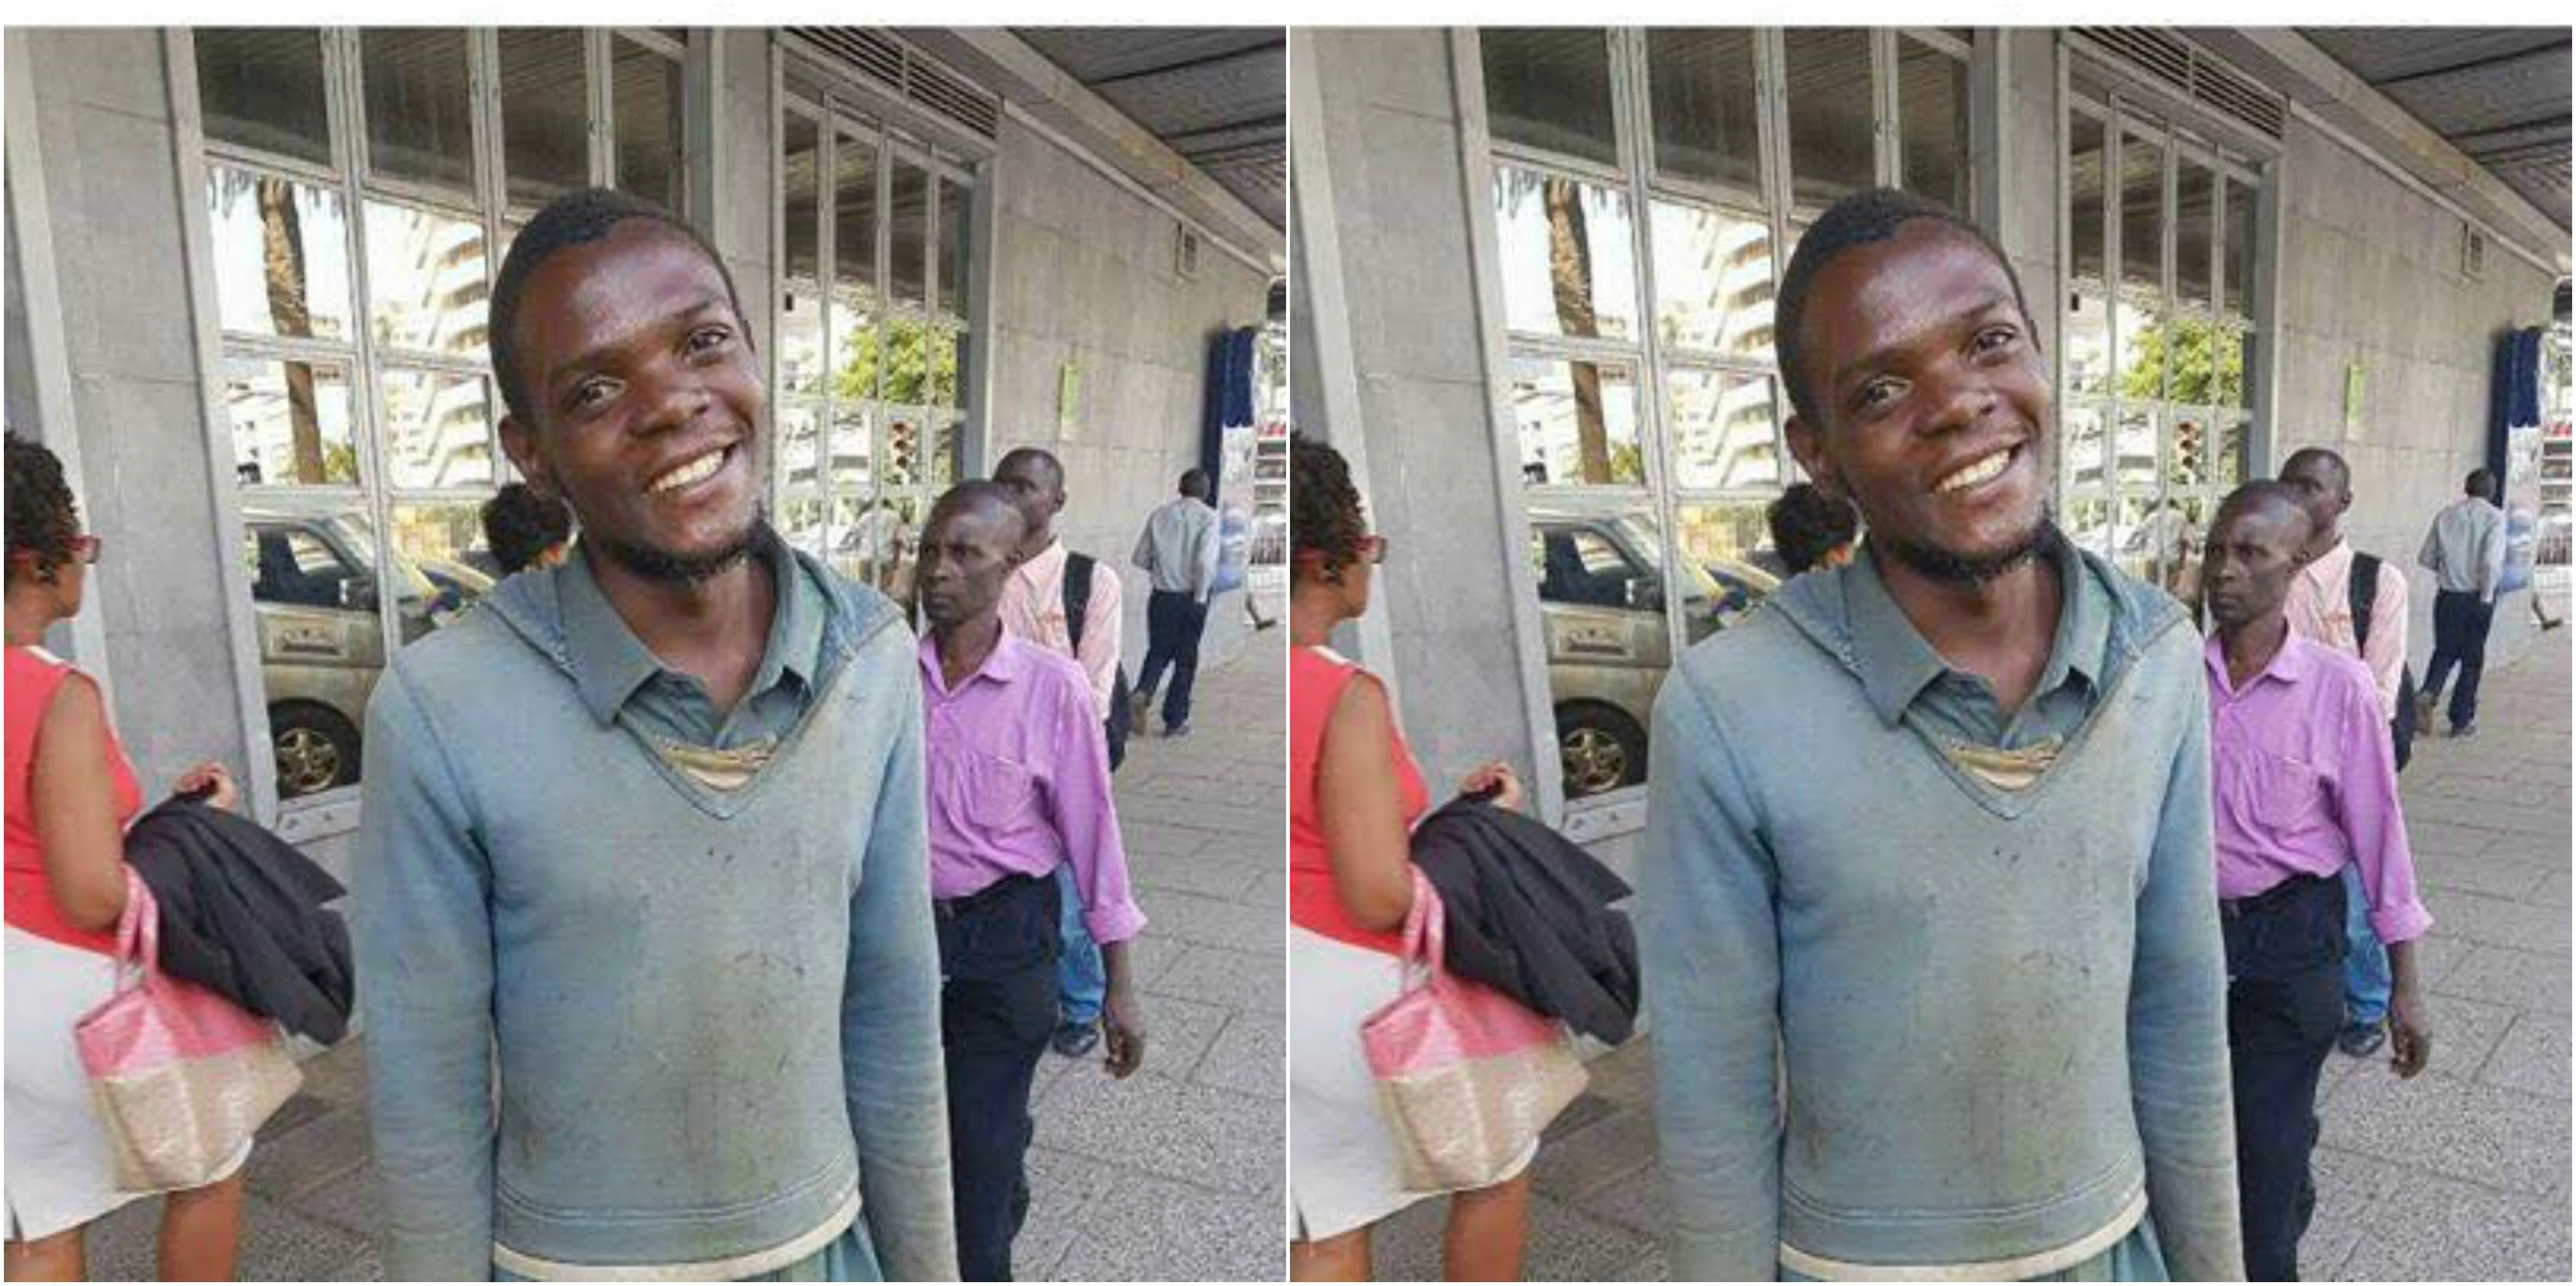 Chokora hands back KSh 200,000 that a stranger dropped in town